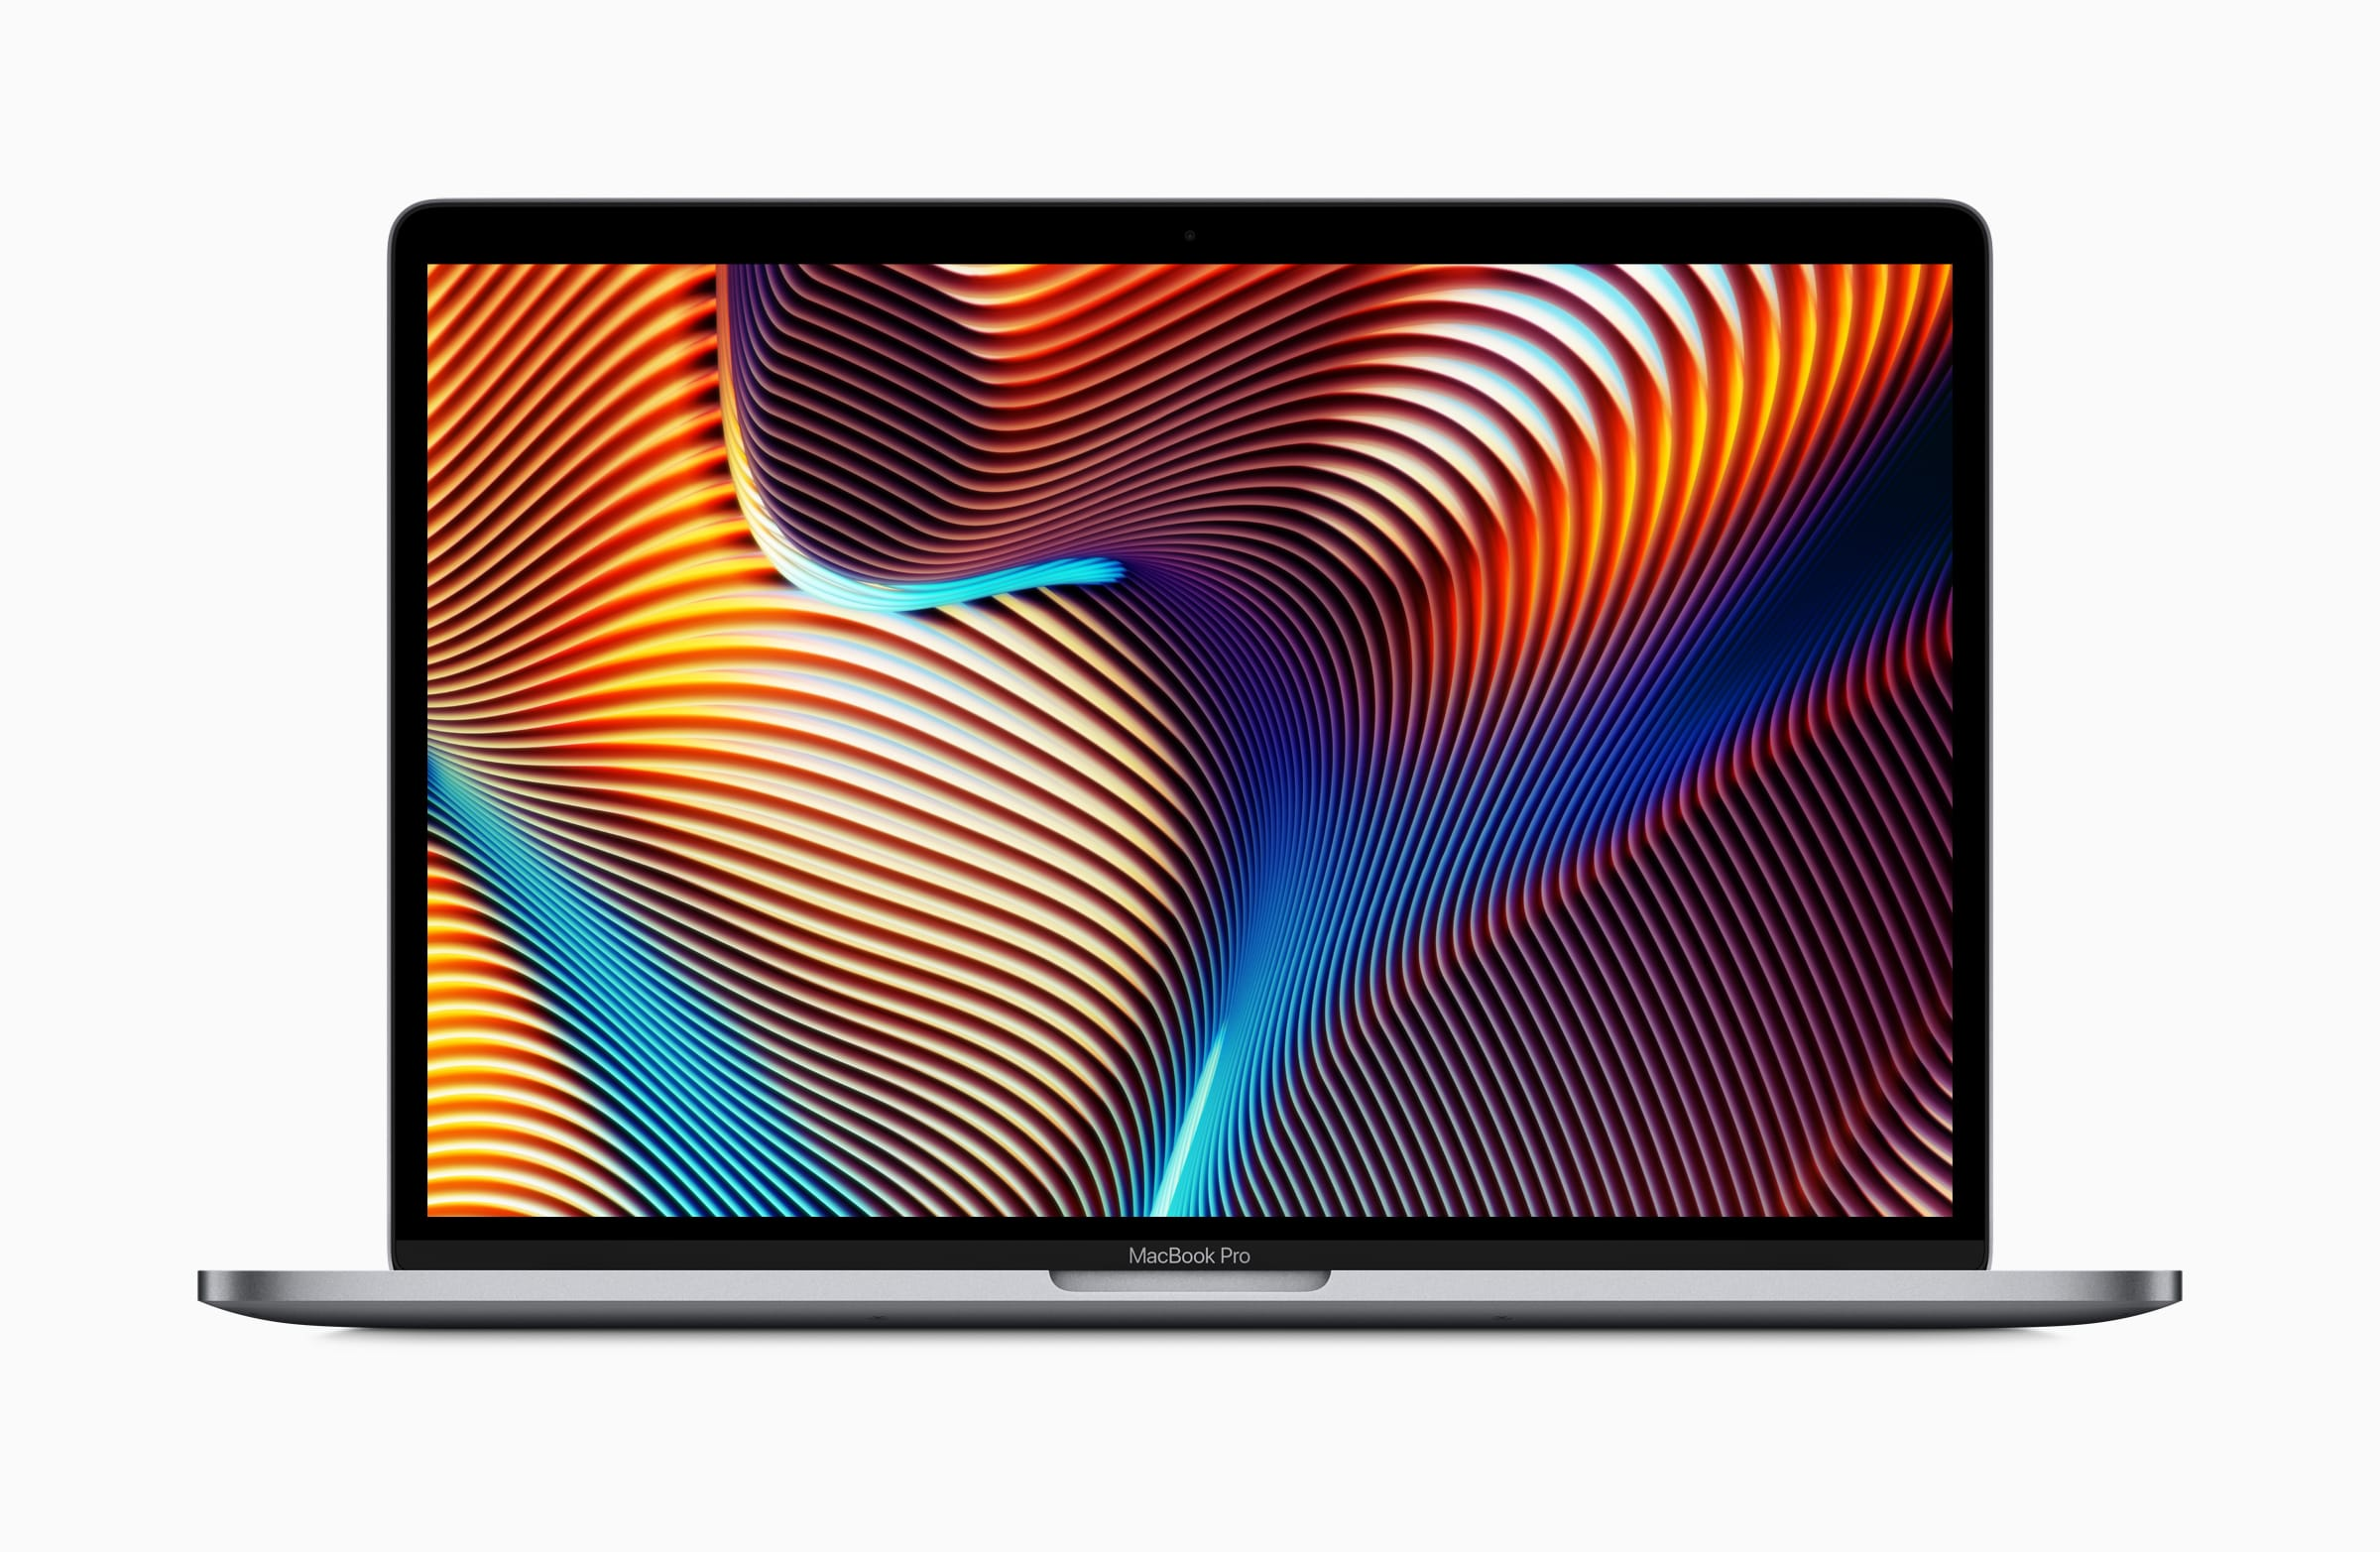 MacBook-Pro-Vega-graphic-10302018